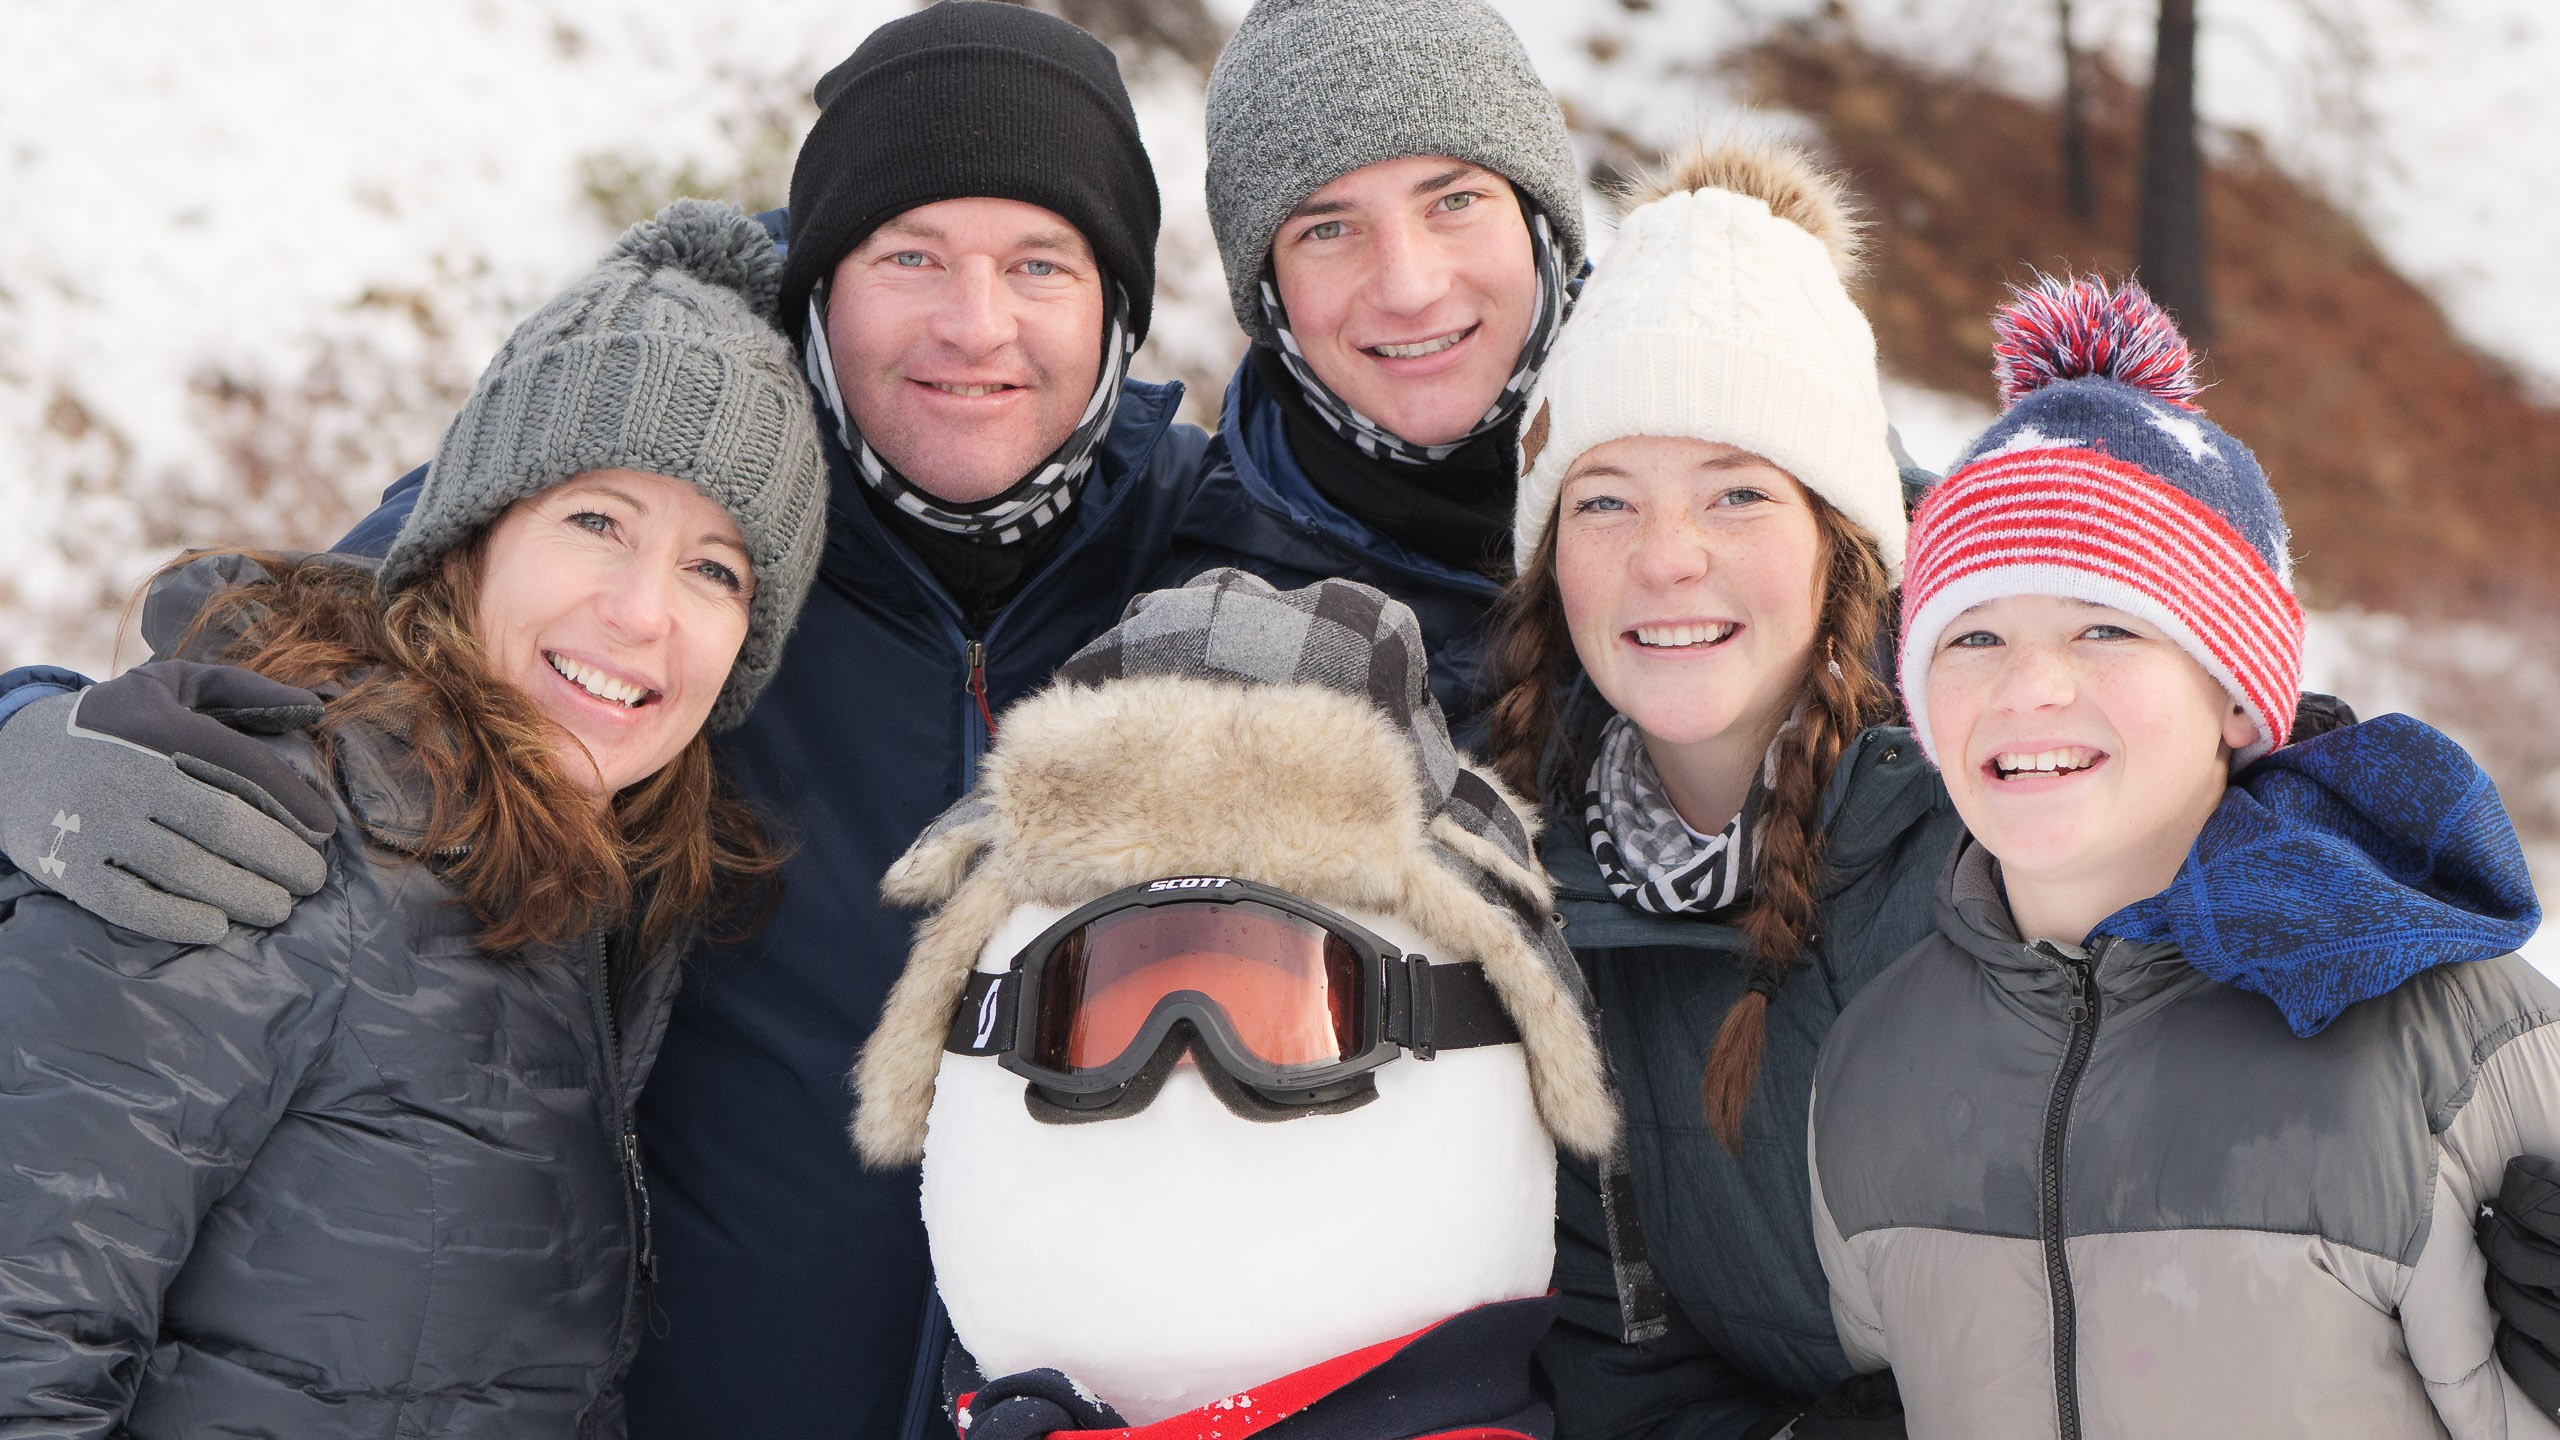 Portrait Tips: How to photograph people on snow | Photofocus